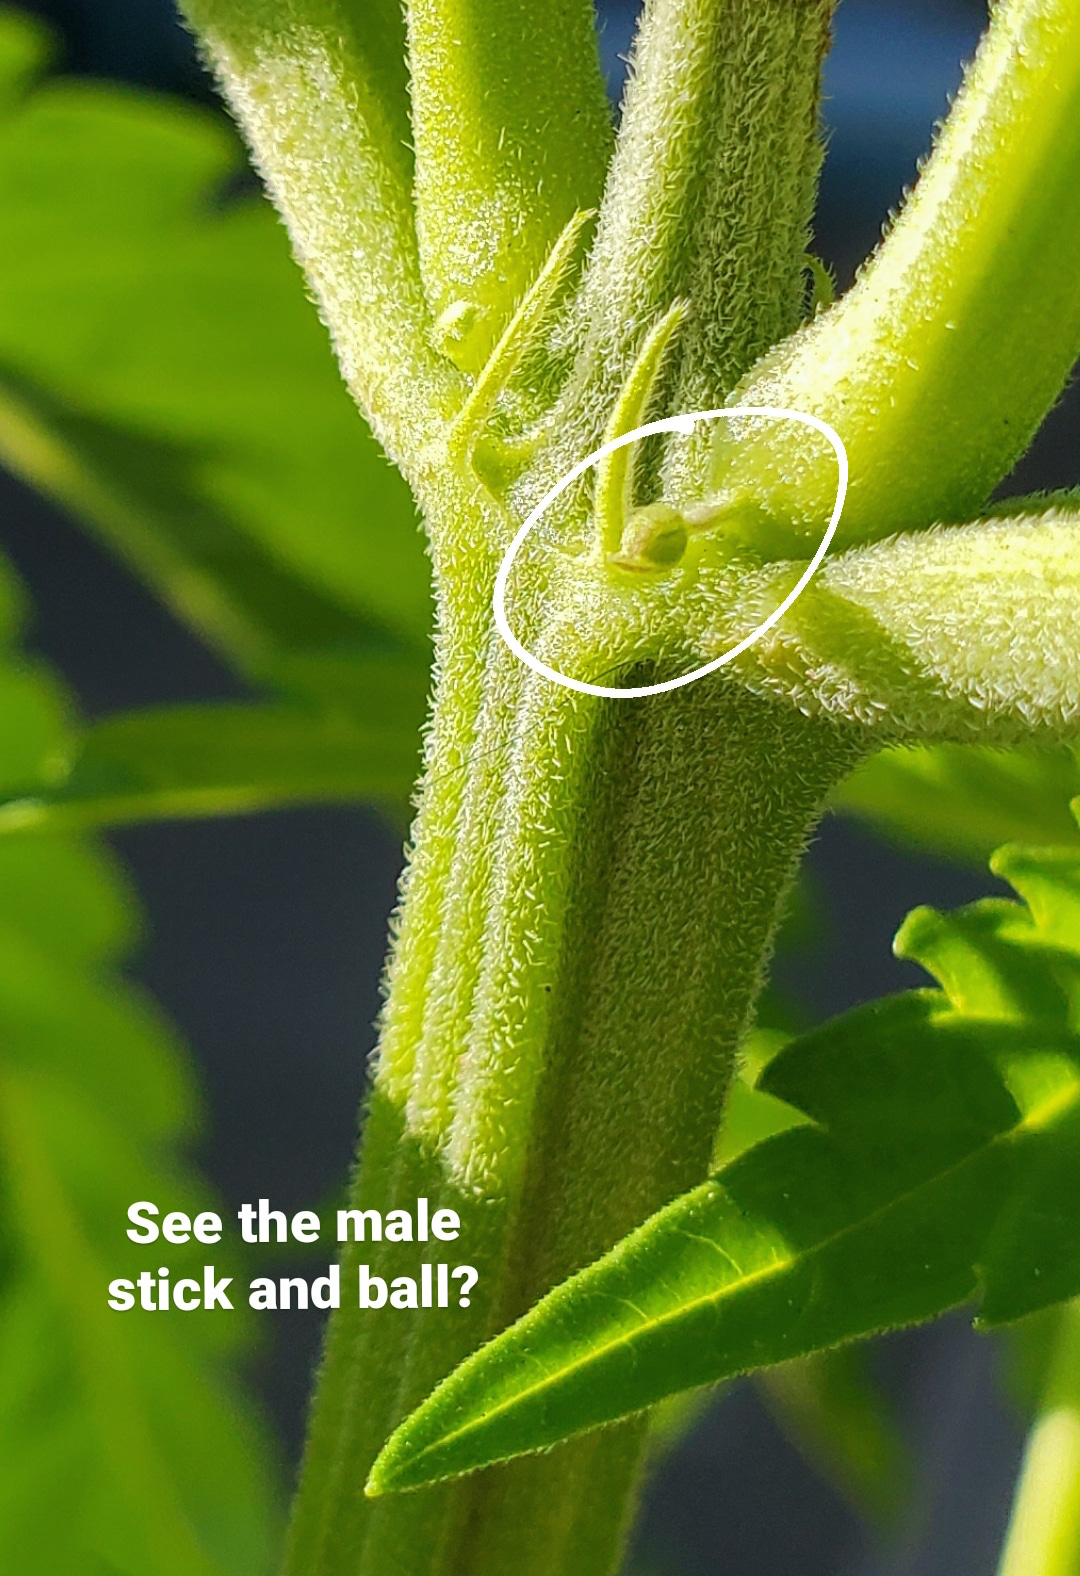 A close up image of a male preflower that resembles a ball on the end of a stick. The preflower is circled I. white and the bottom of the image has text that reads,